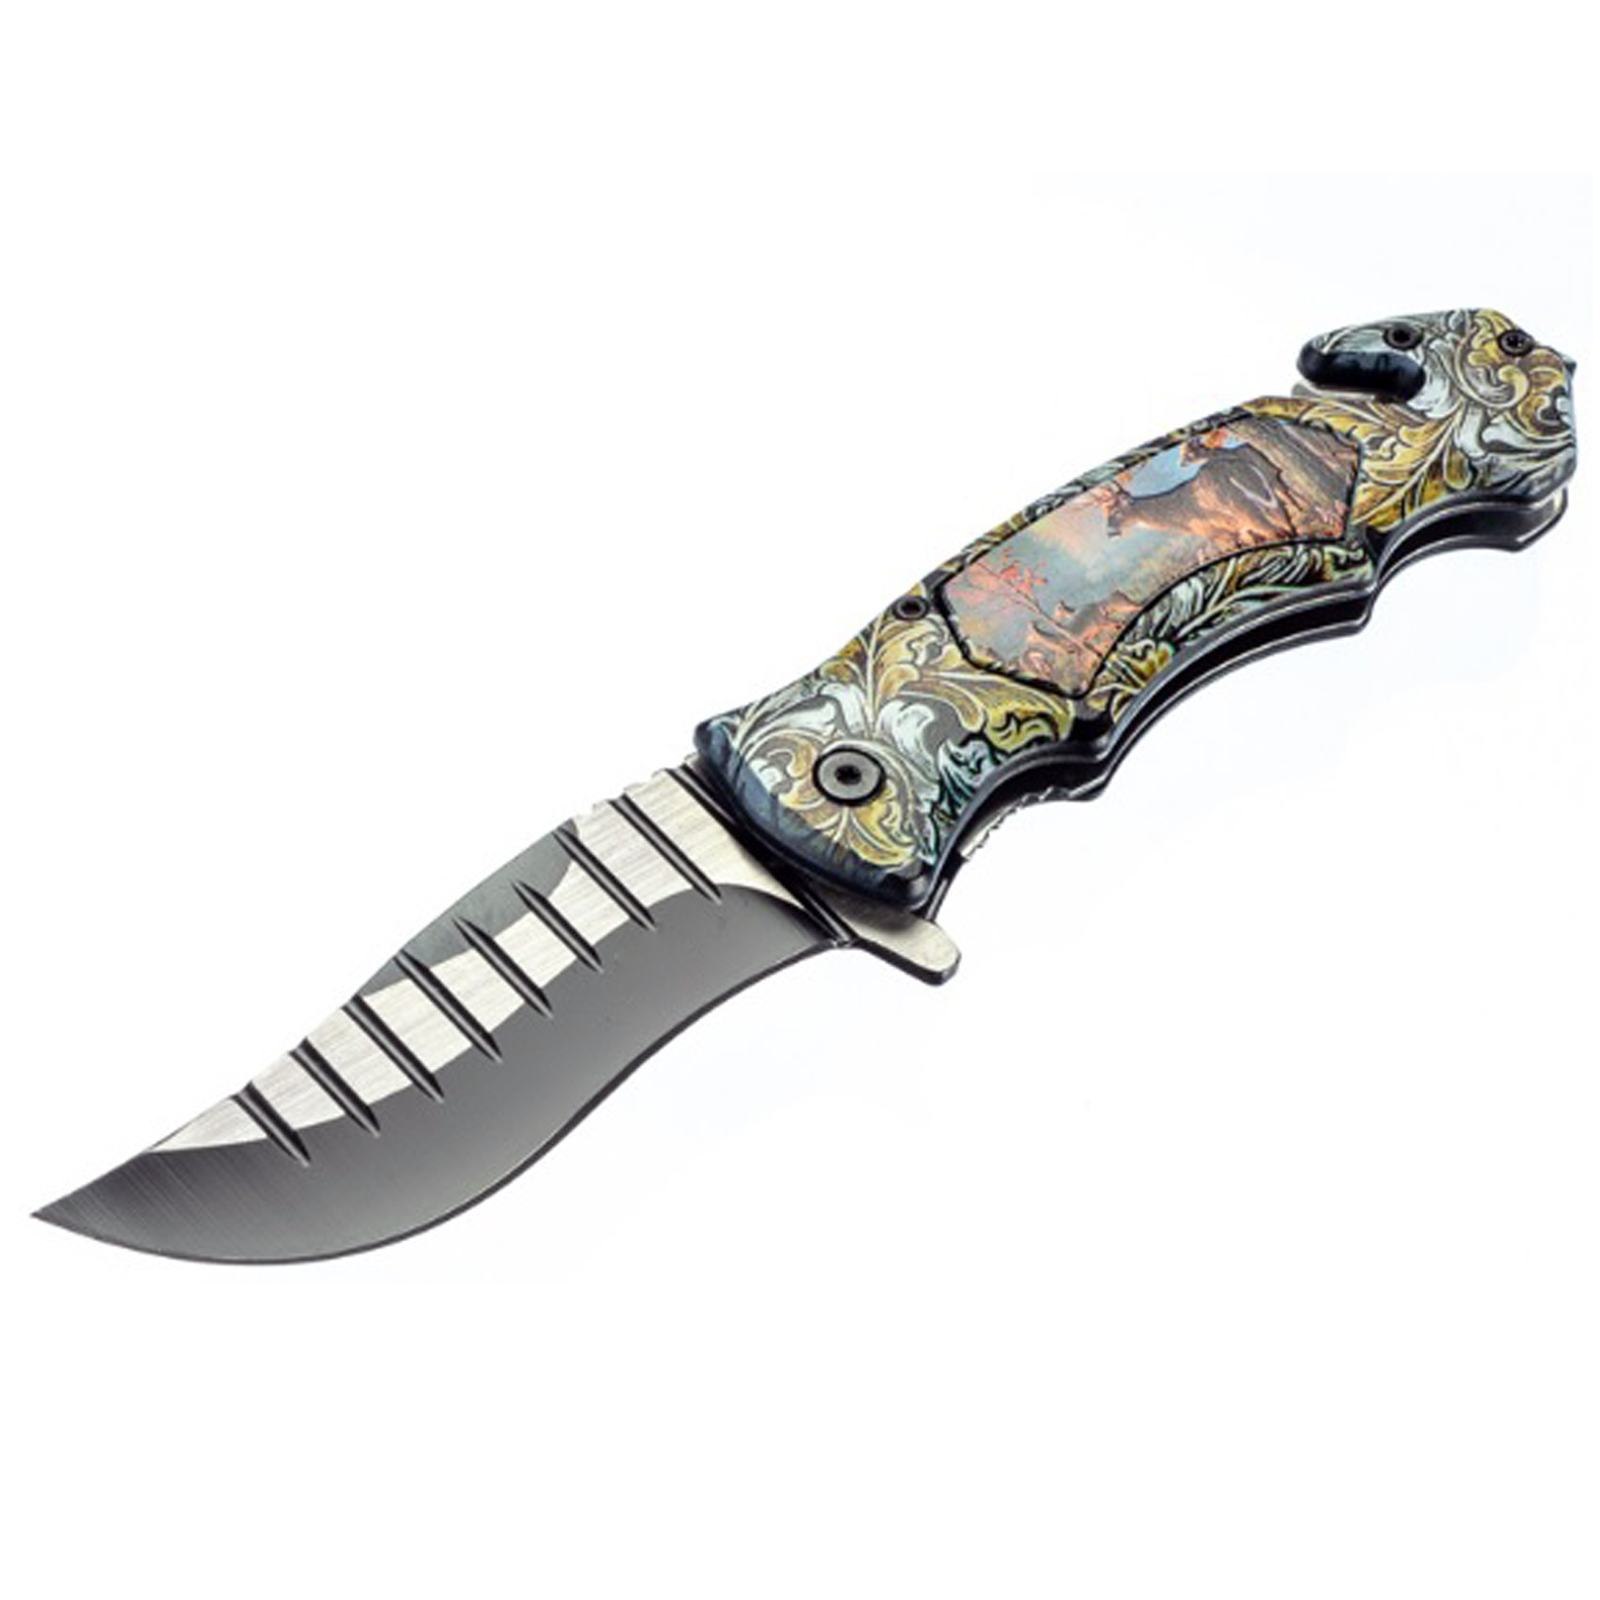 ASR Outdoor Clip Point Pocket Knife Deer Design